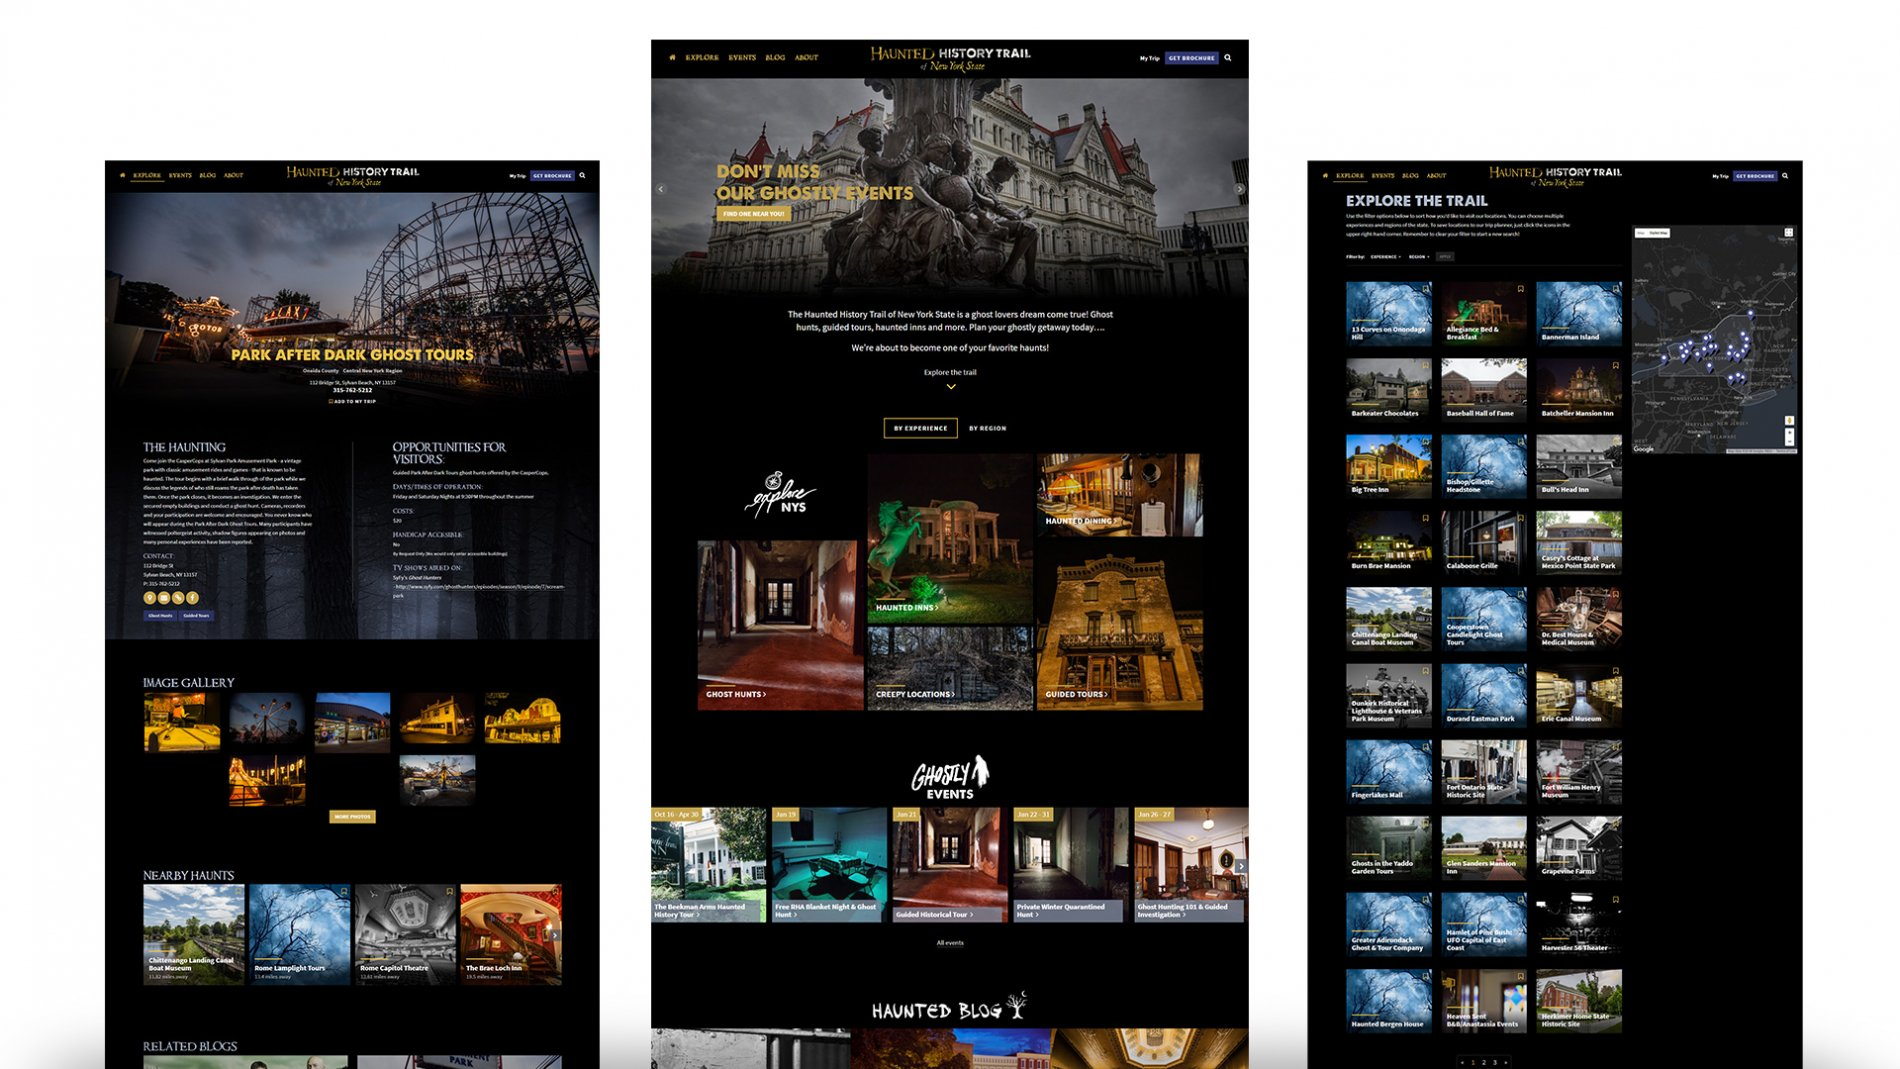 Haunted History Trail, tourism web design